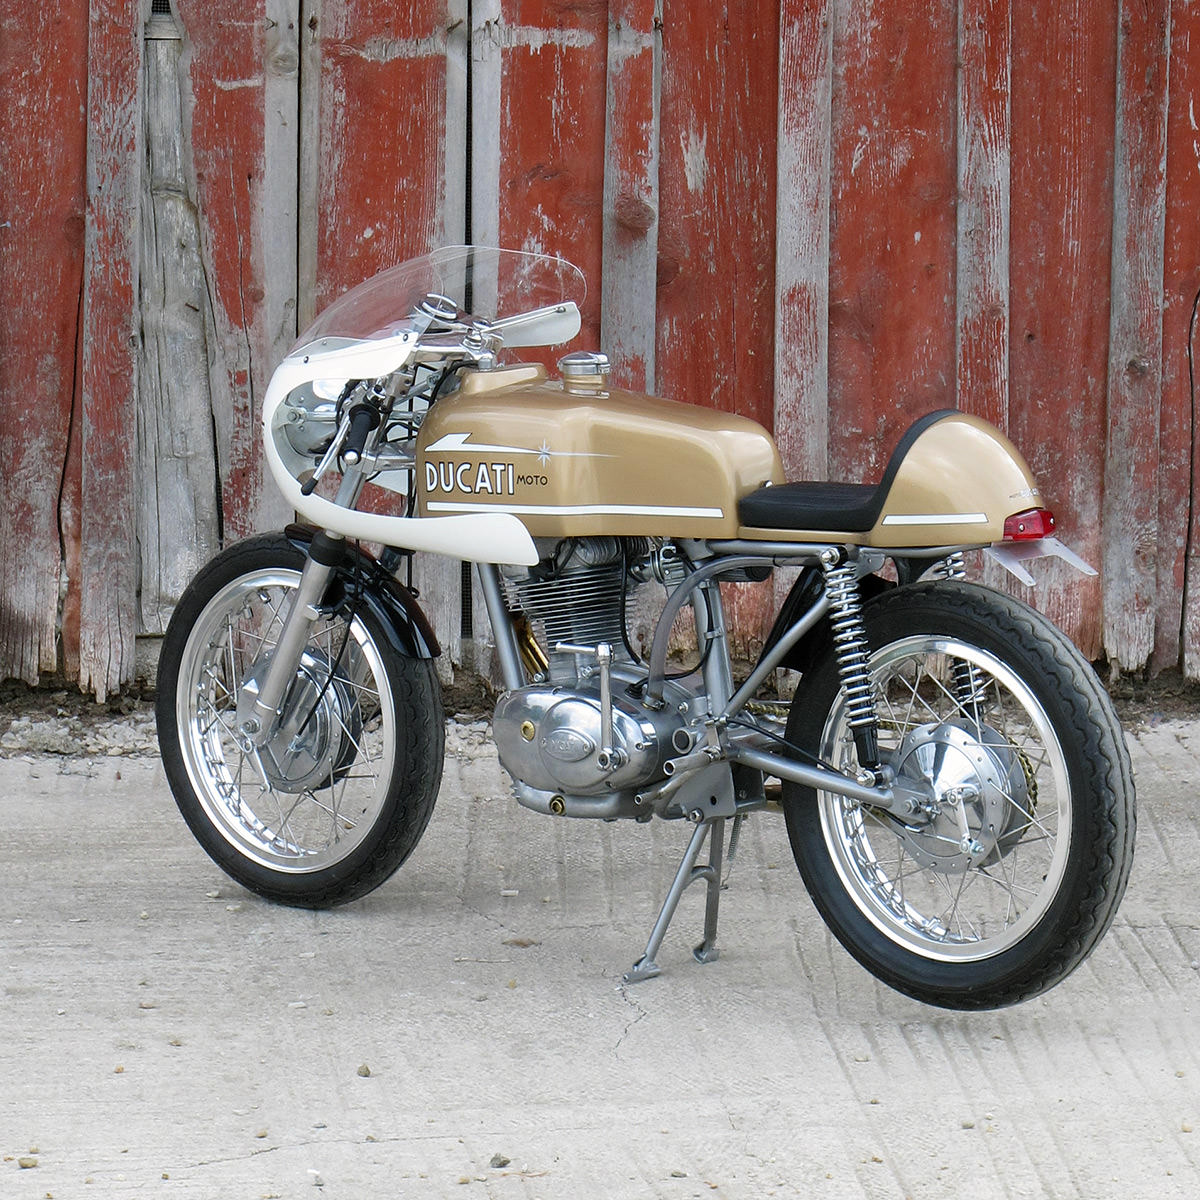 Ducati 450 Mark 3 1970 images #171191